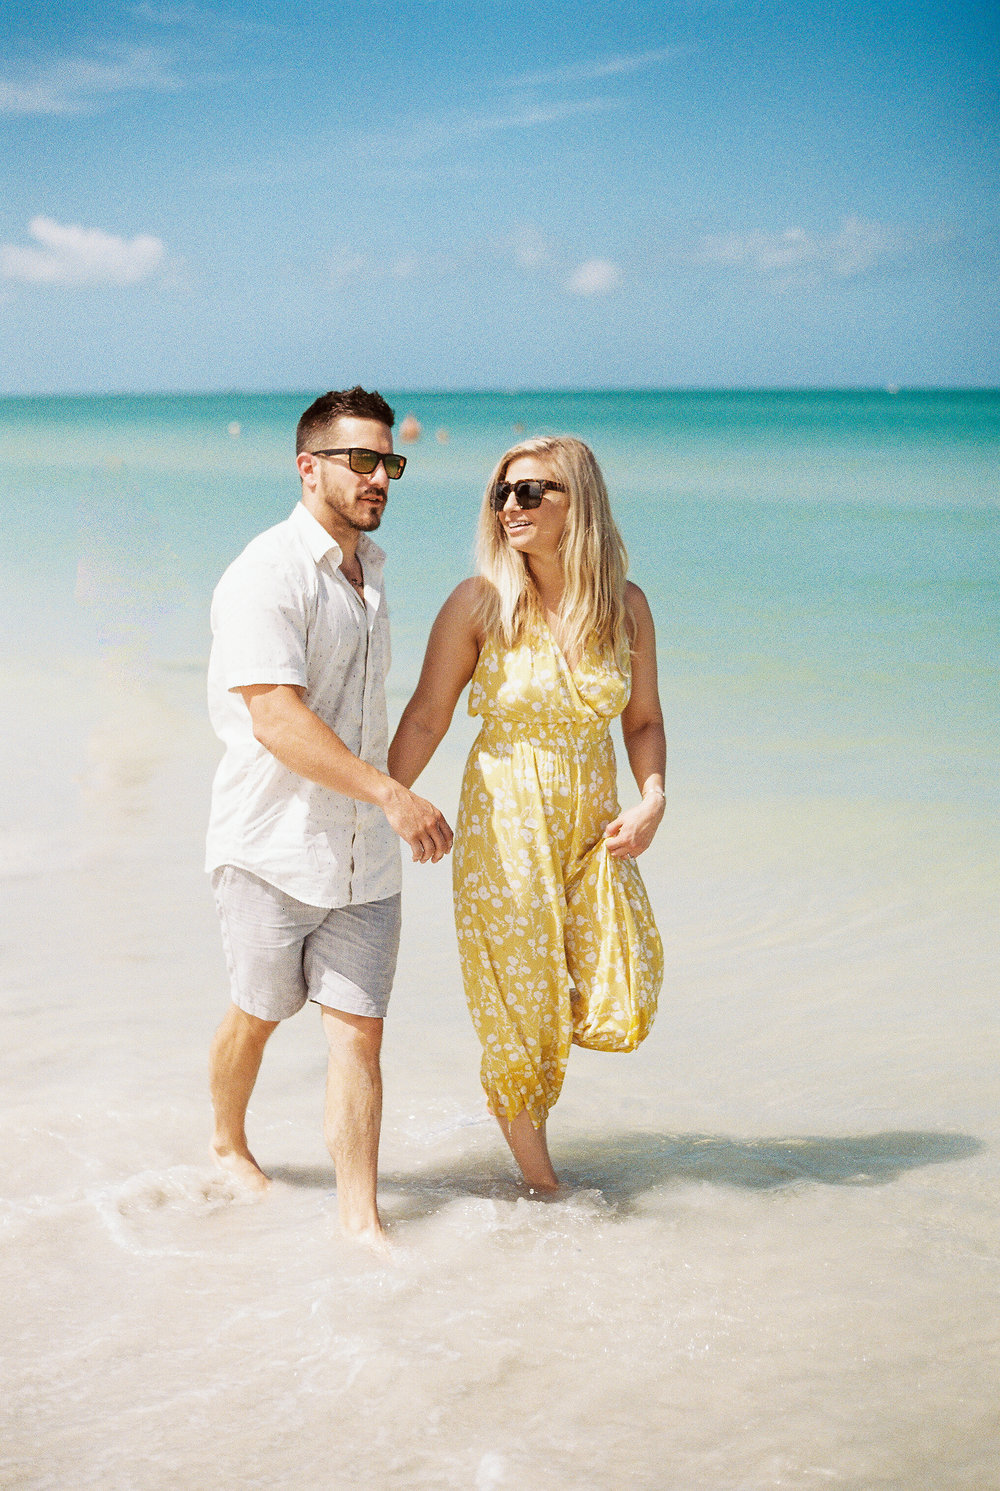 pass-e-grille-st-pete-beach-fl-engagement-photos-jessica-bellinger-photography-427.jpg